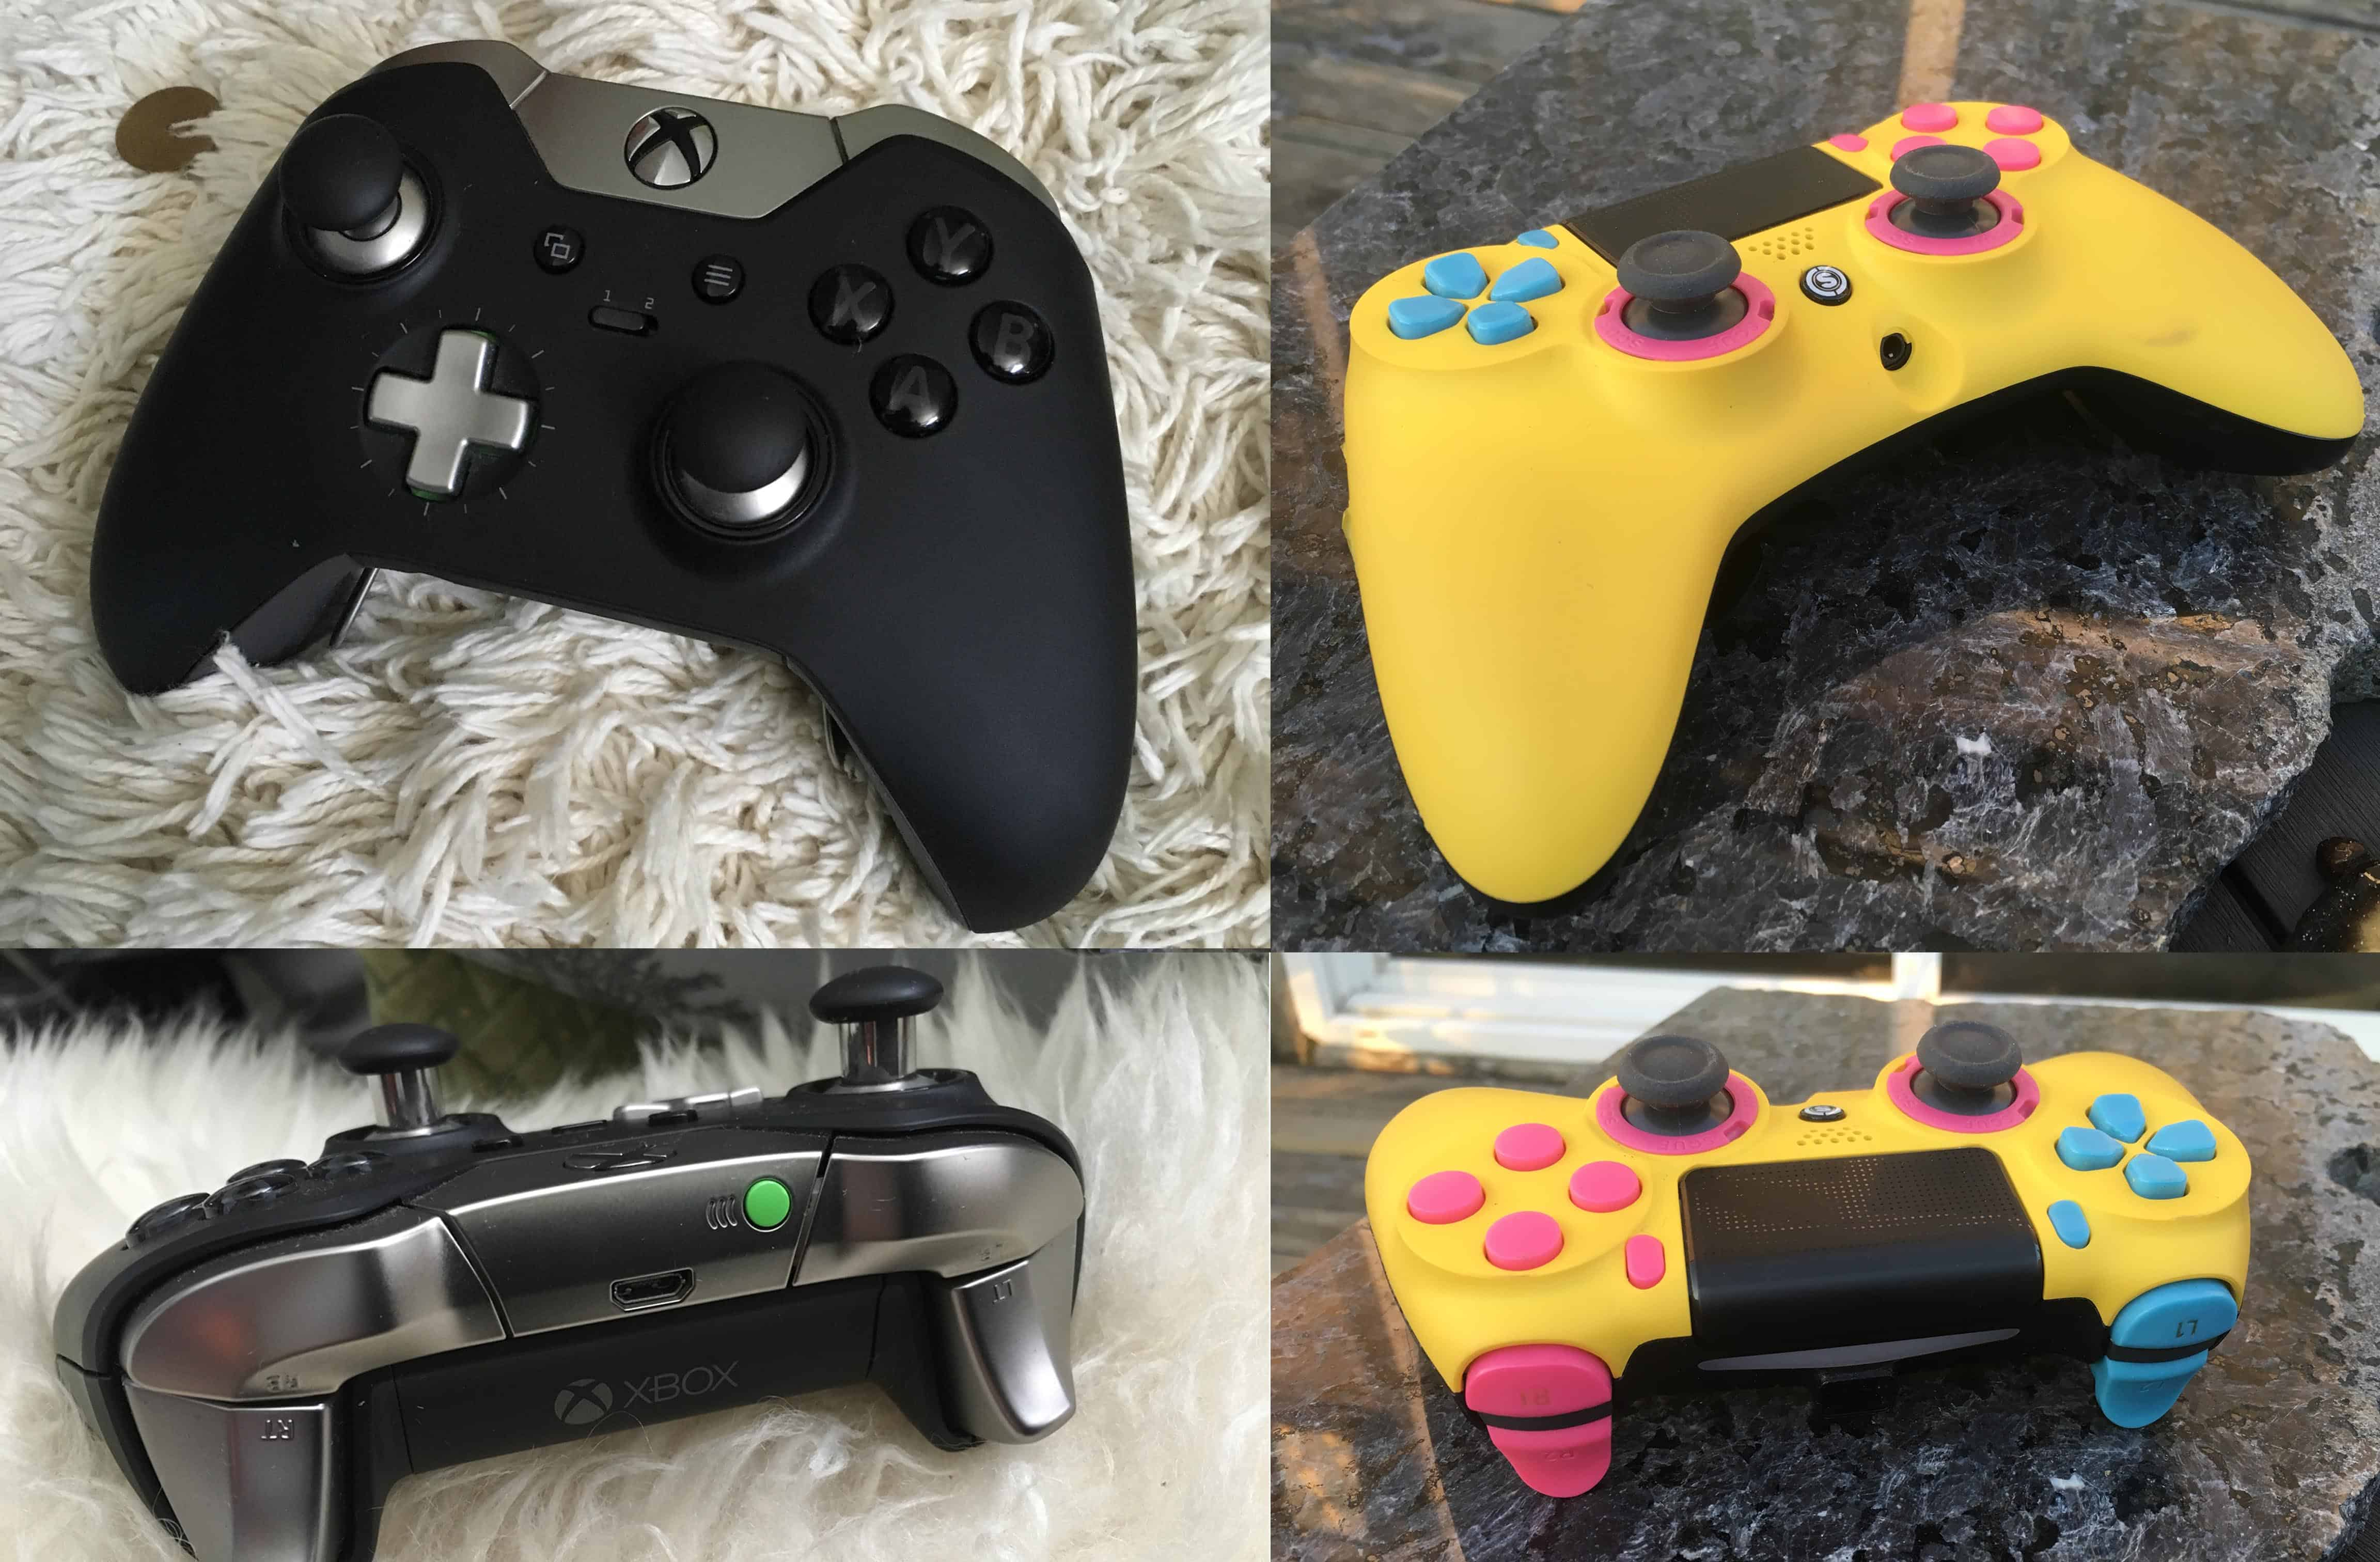 We Tested the Scuf Impact and the XBox Elite Controllers for Playstation. Here's What We Found.